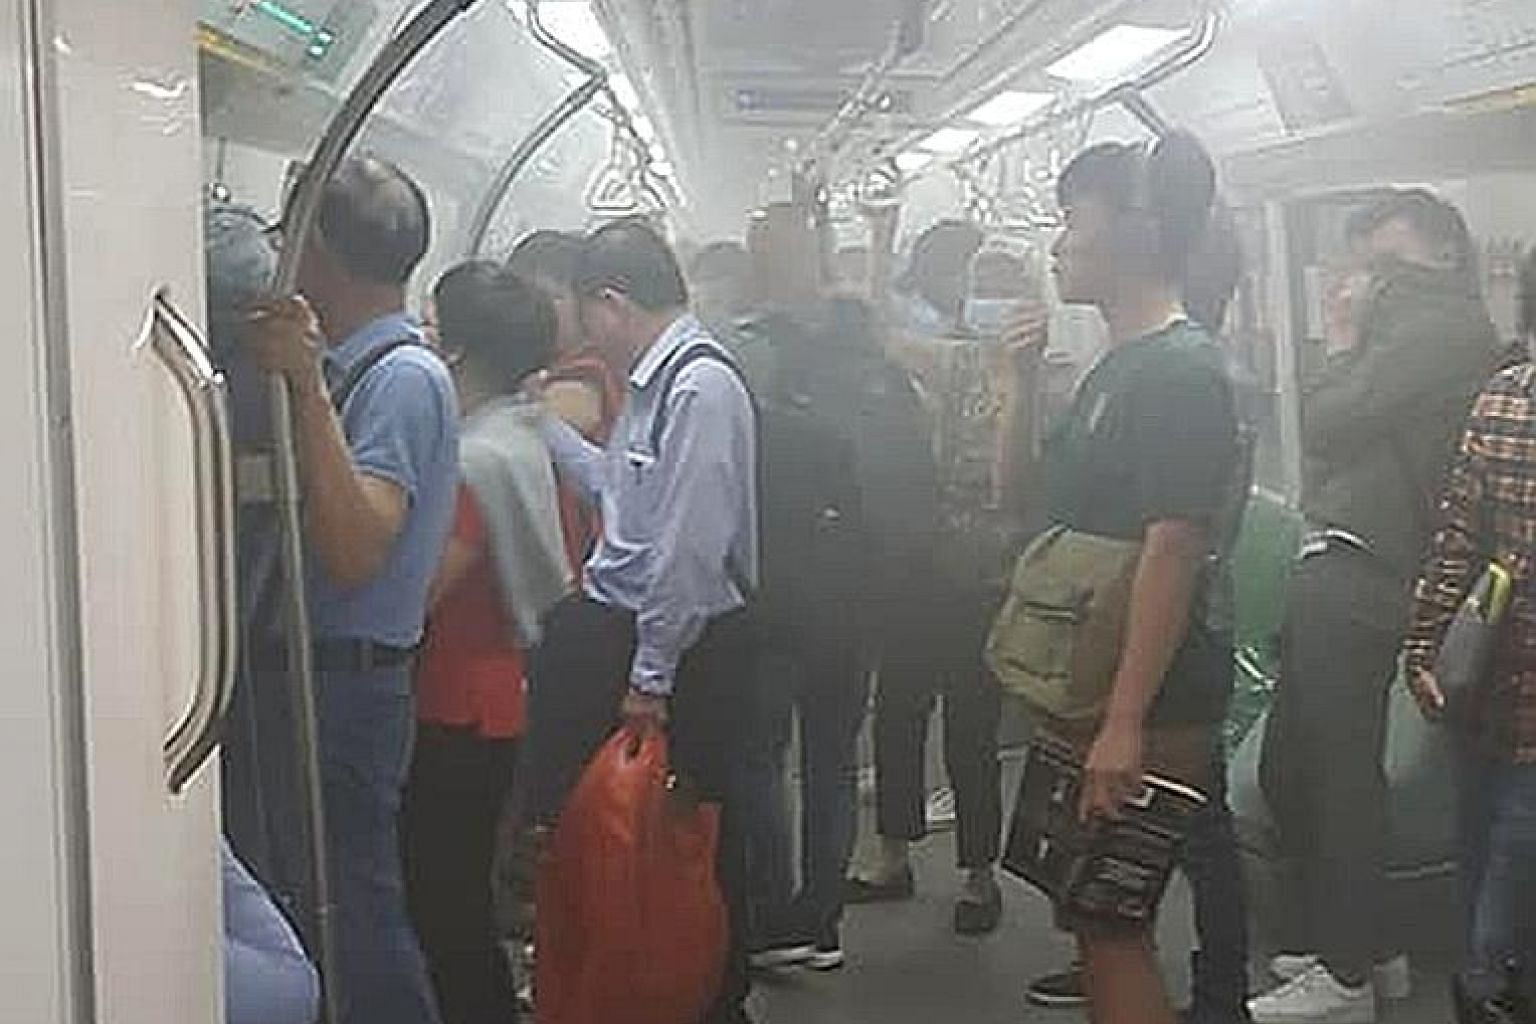 White smoke inside the cabin of the MRT train at Tanjong Pagar yesterday.